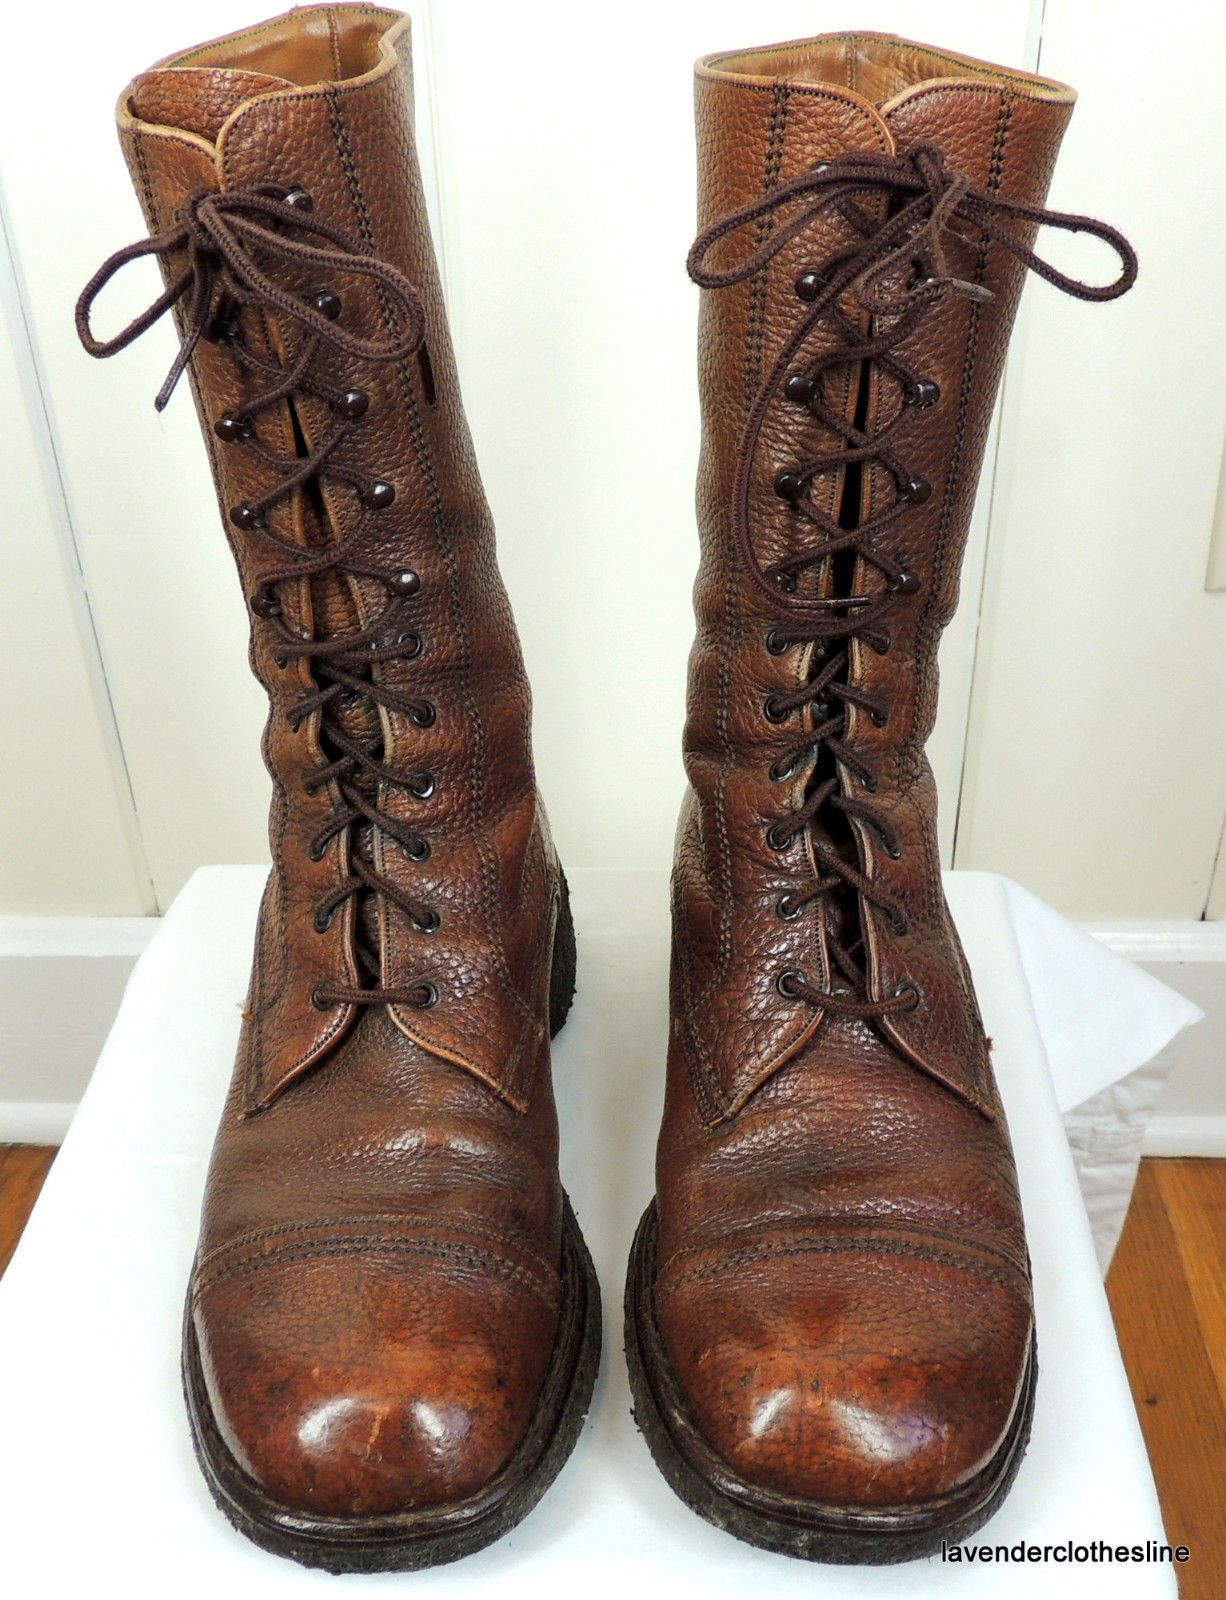 ce555f7e74314 Florsheim Imperial leather boots, mens 7.5. Lace up, 11